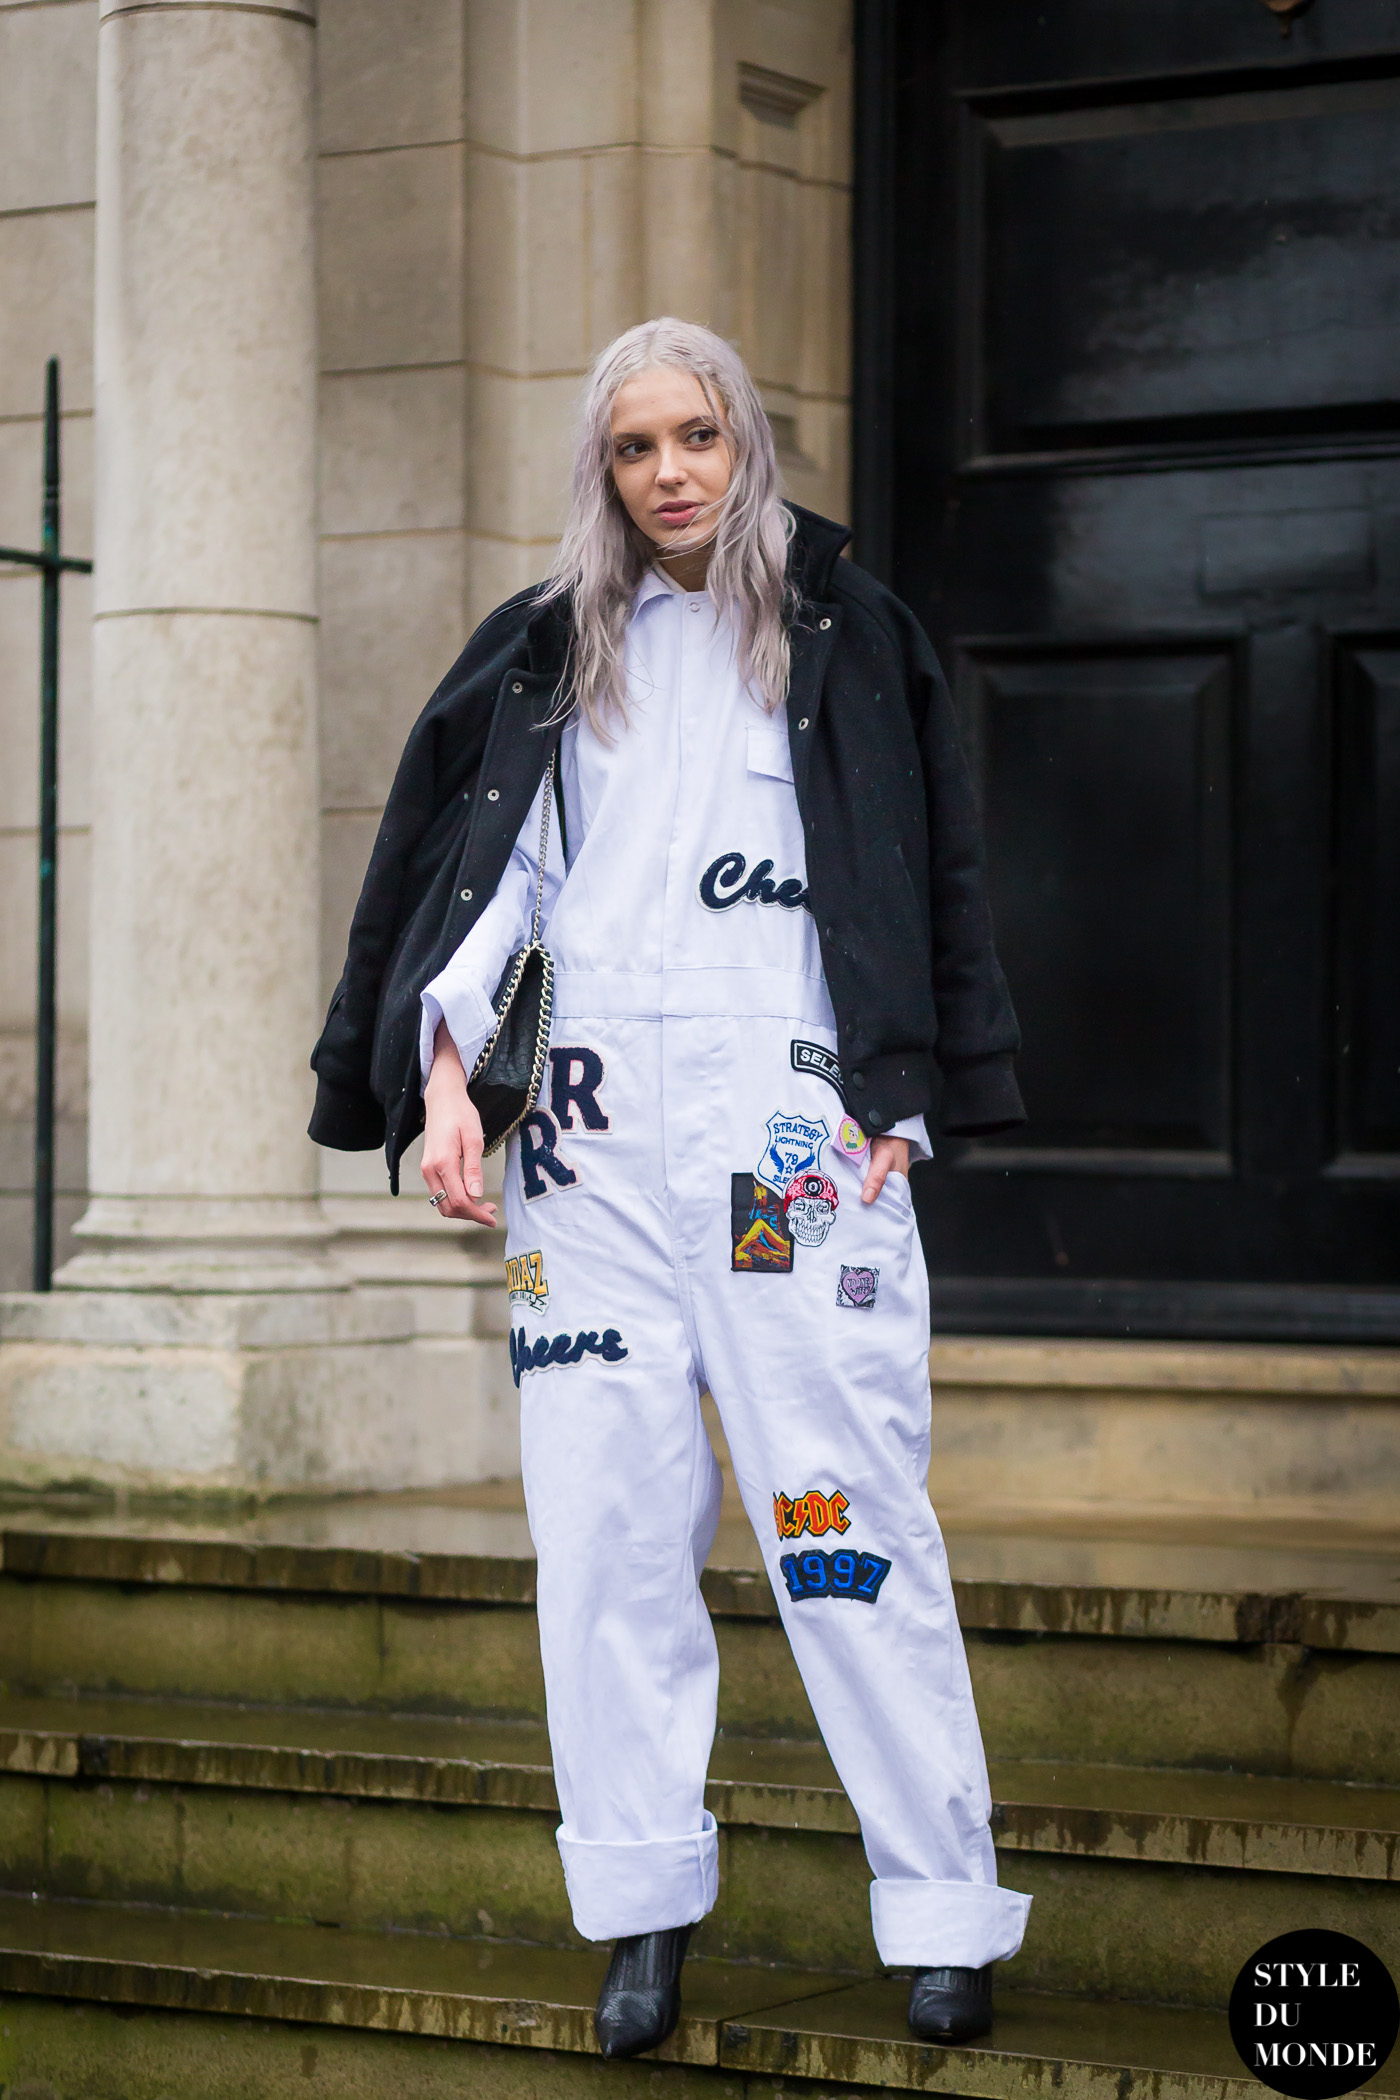 Patched jumpsuit before Topshop Street Style Street Fashion Streetsnaps by STYLEDUMONDE Street Style Fashion Blog